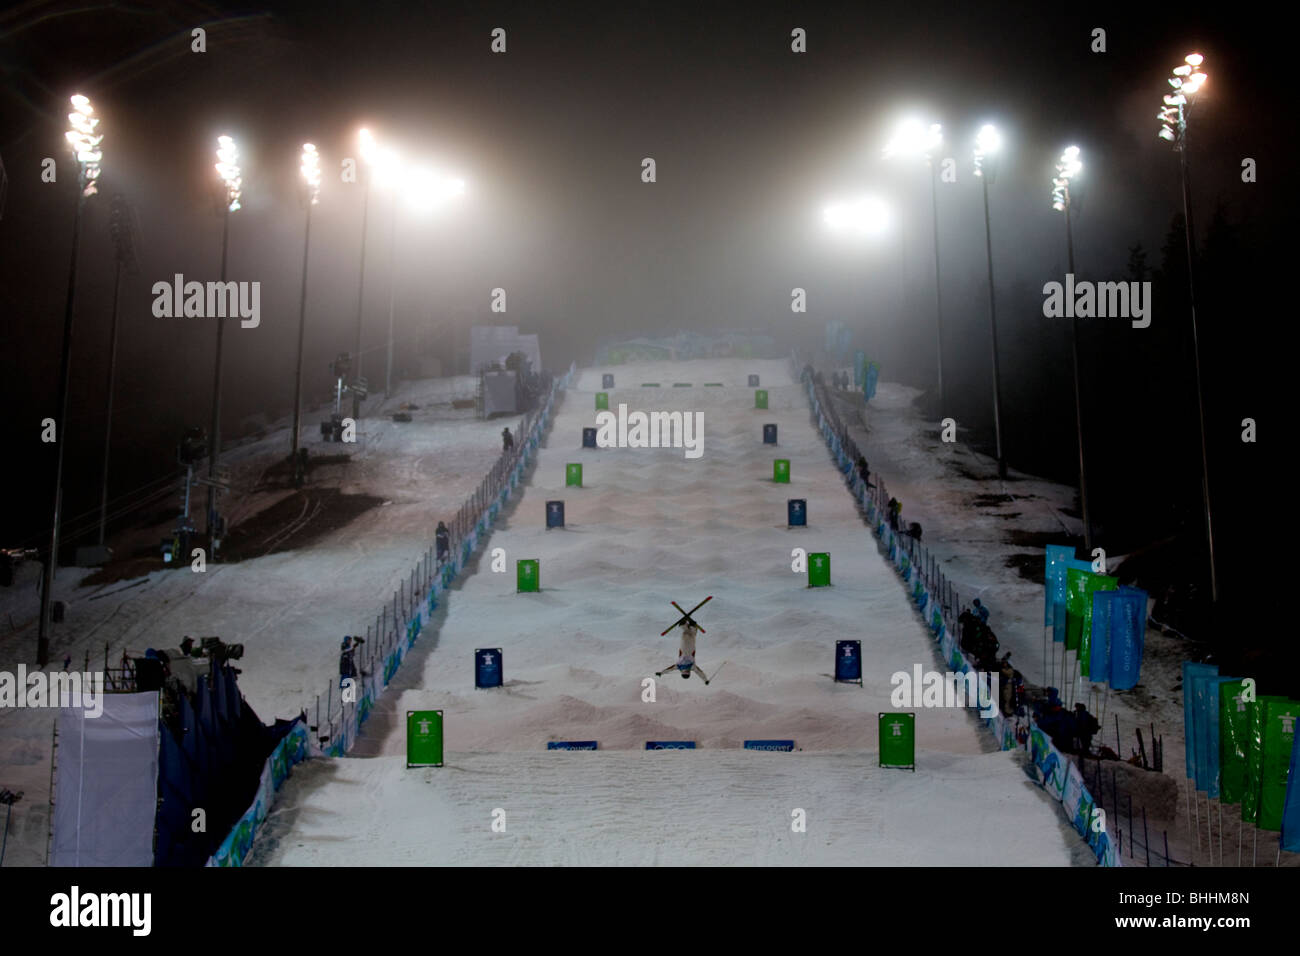 Competitor in the freestyle skiing moguls at the Cypress Mountain venue at the 2010 Olympic Winter Games - Stock Image